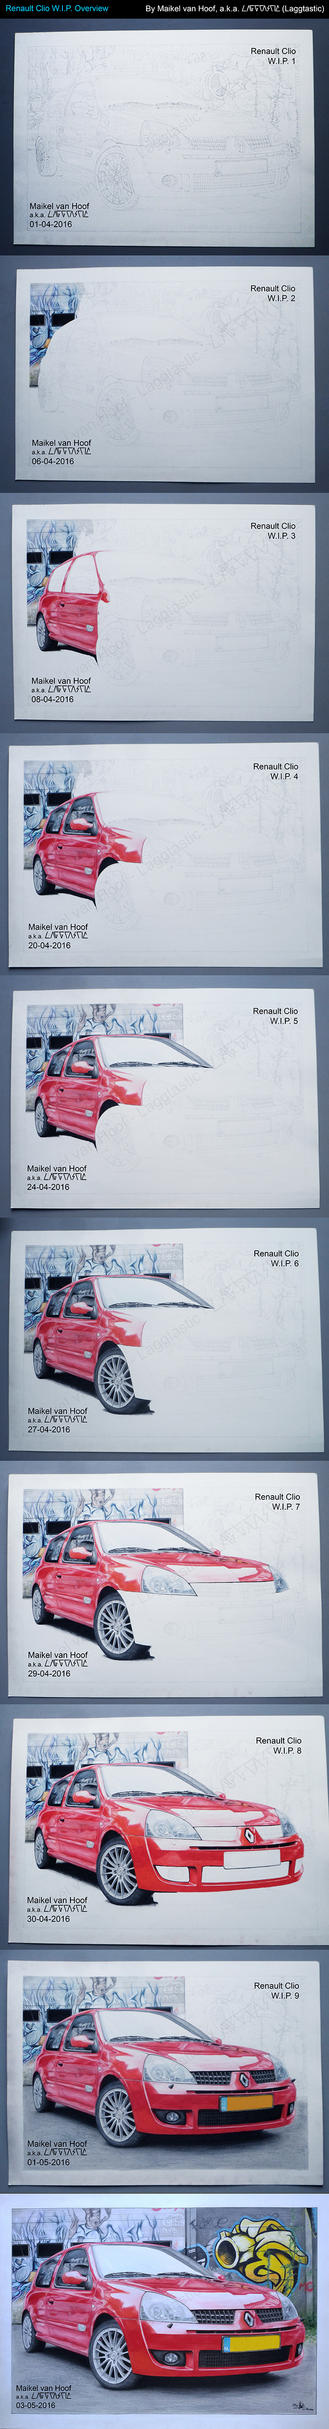 Renault Clio W.I.P. Overview by Laggtastic